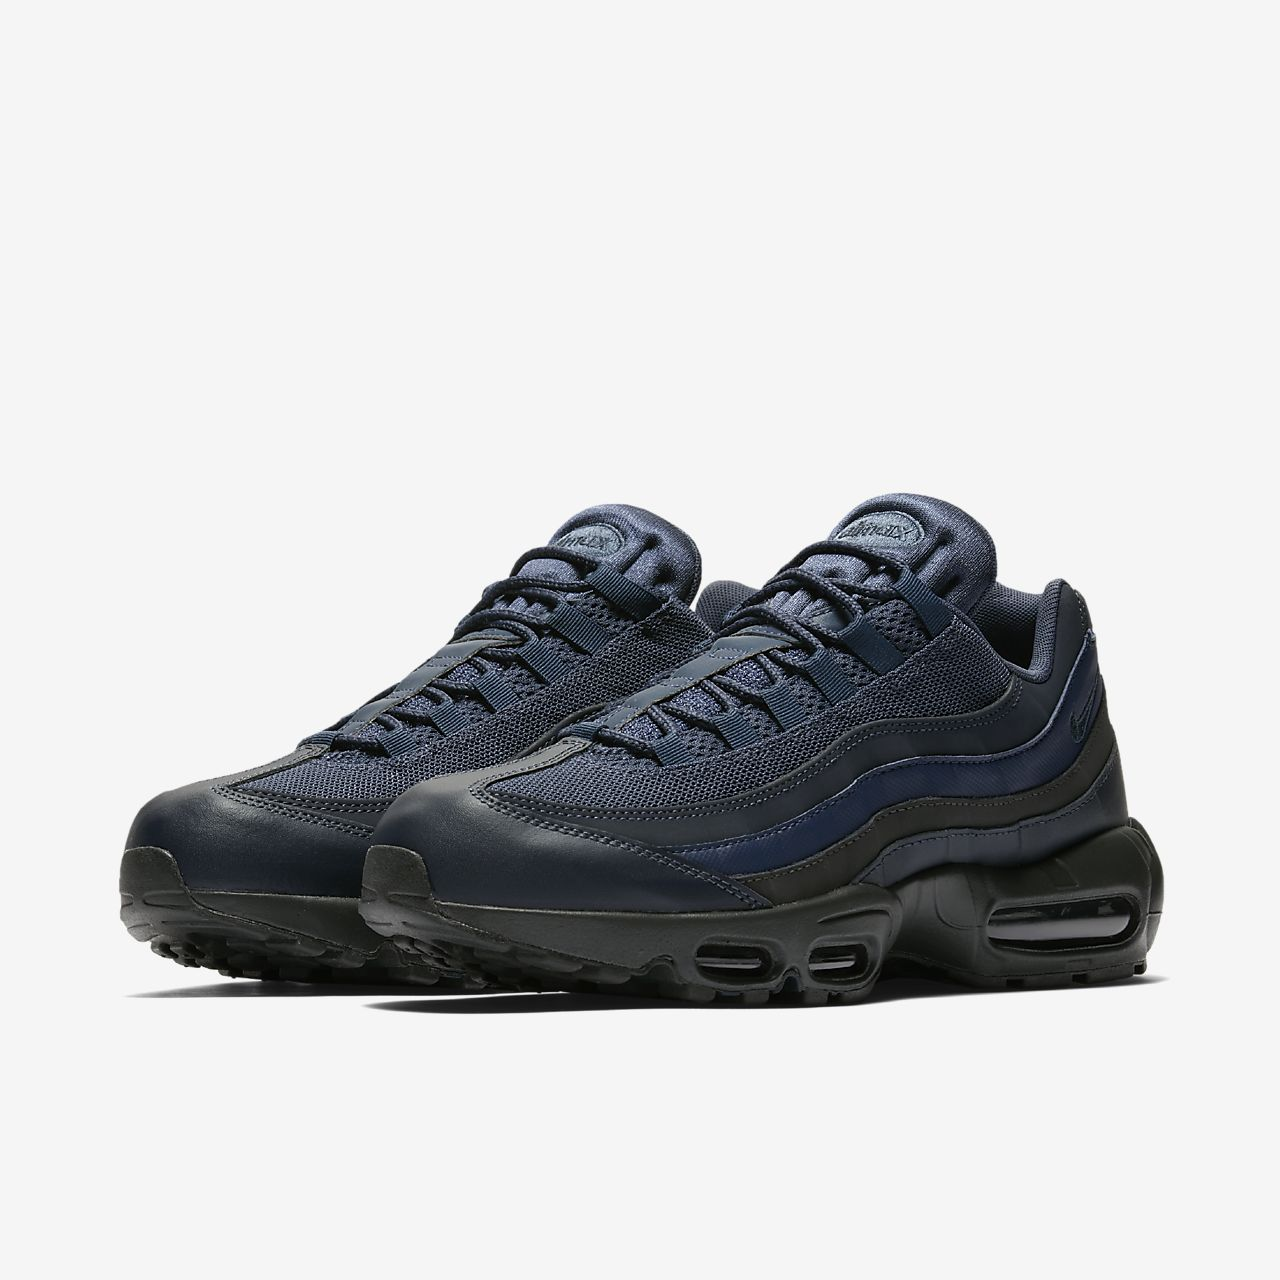 buy online 79475 a32b1 ... Nike Air Max 95 Essential Mens Shoe